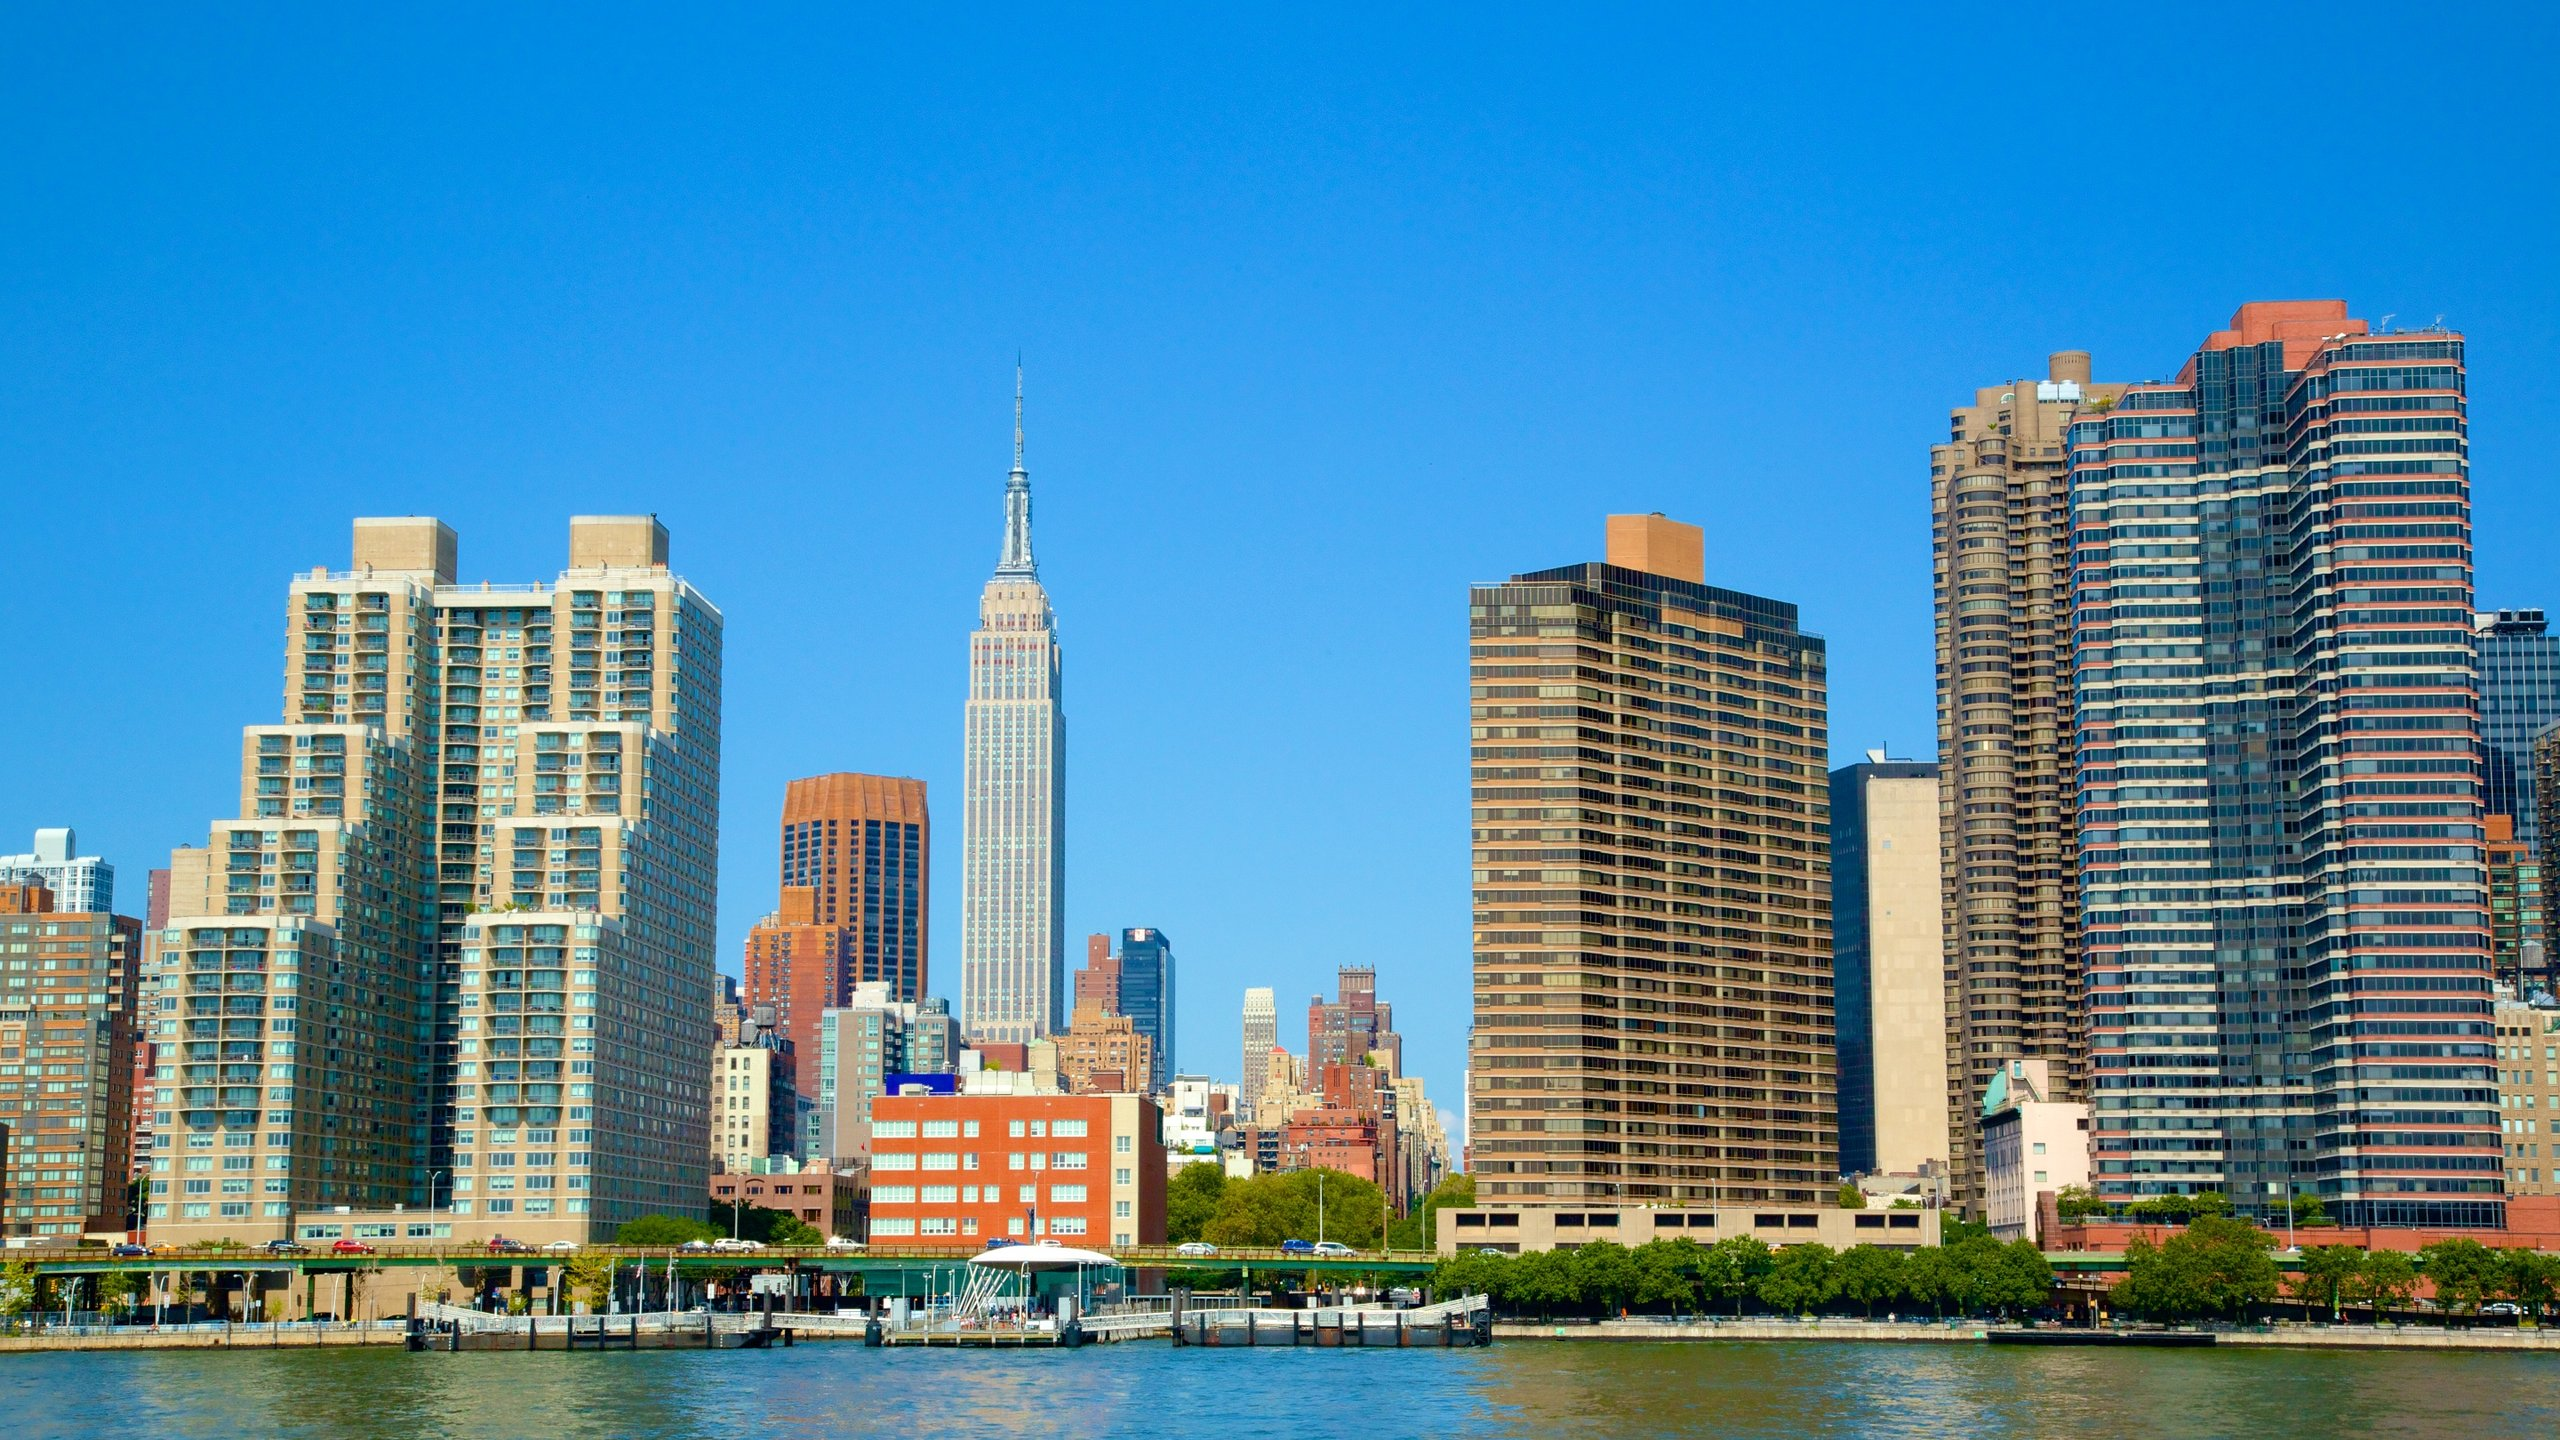 Midtown South, New York, New York, United States of America